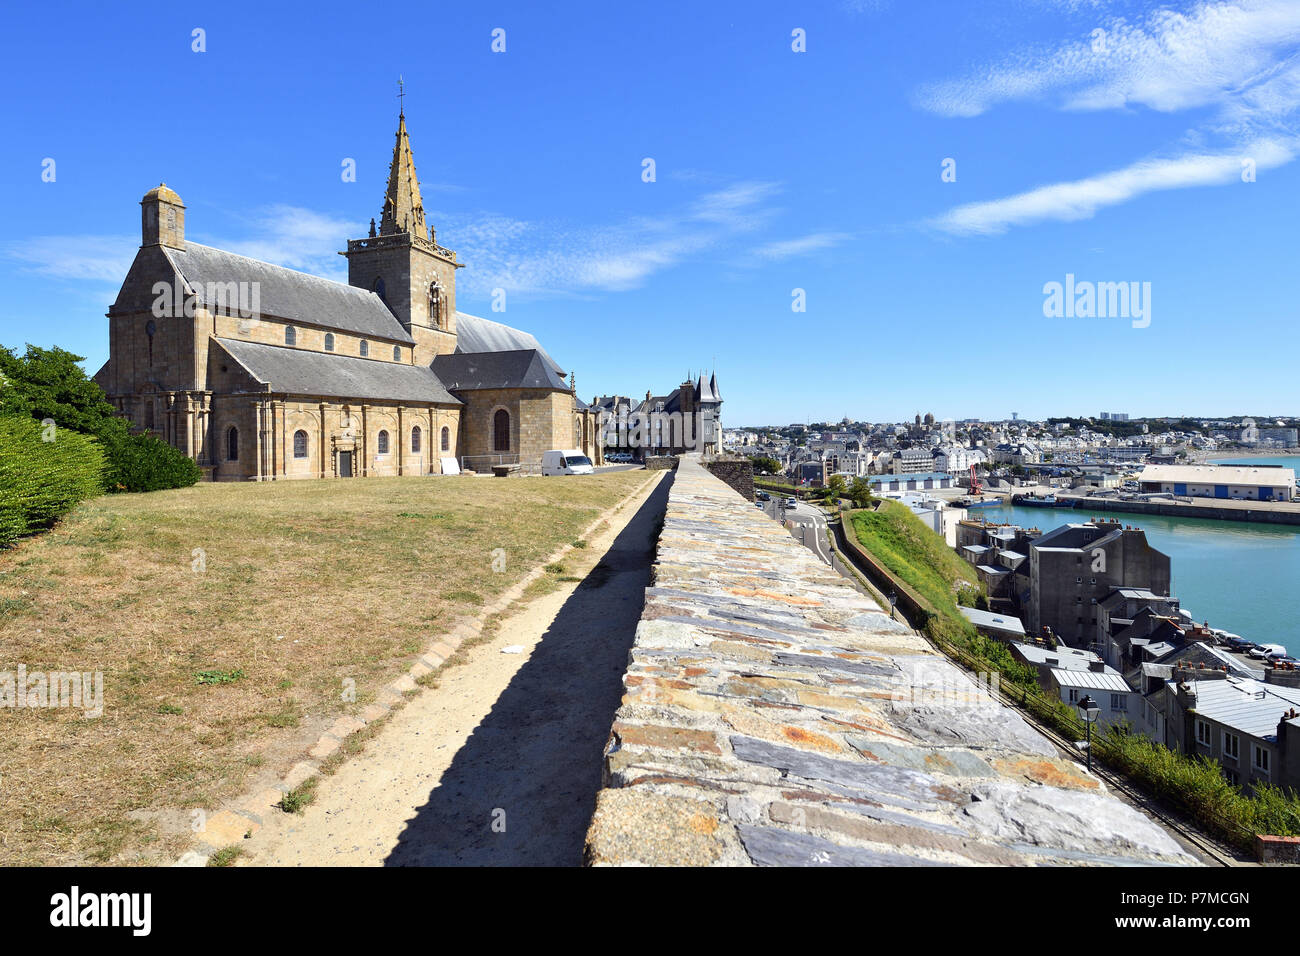 France, Manche, Cotentin, Granville, the Upper Town built on a rocky headland on the far eastern point of the Mont Saint Michel Bay, Notre Dame du Cap Lihou church - Stock Image